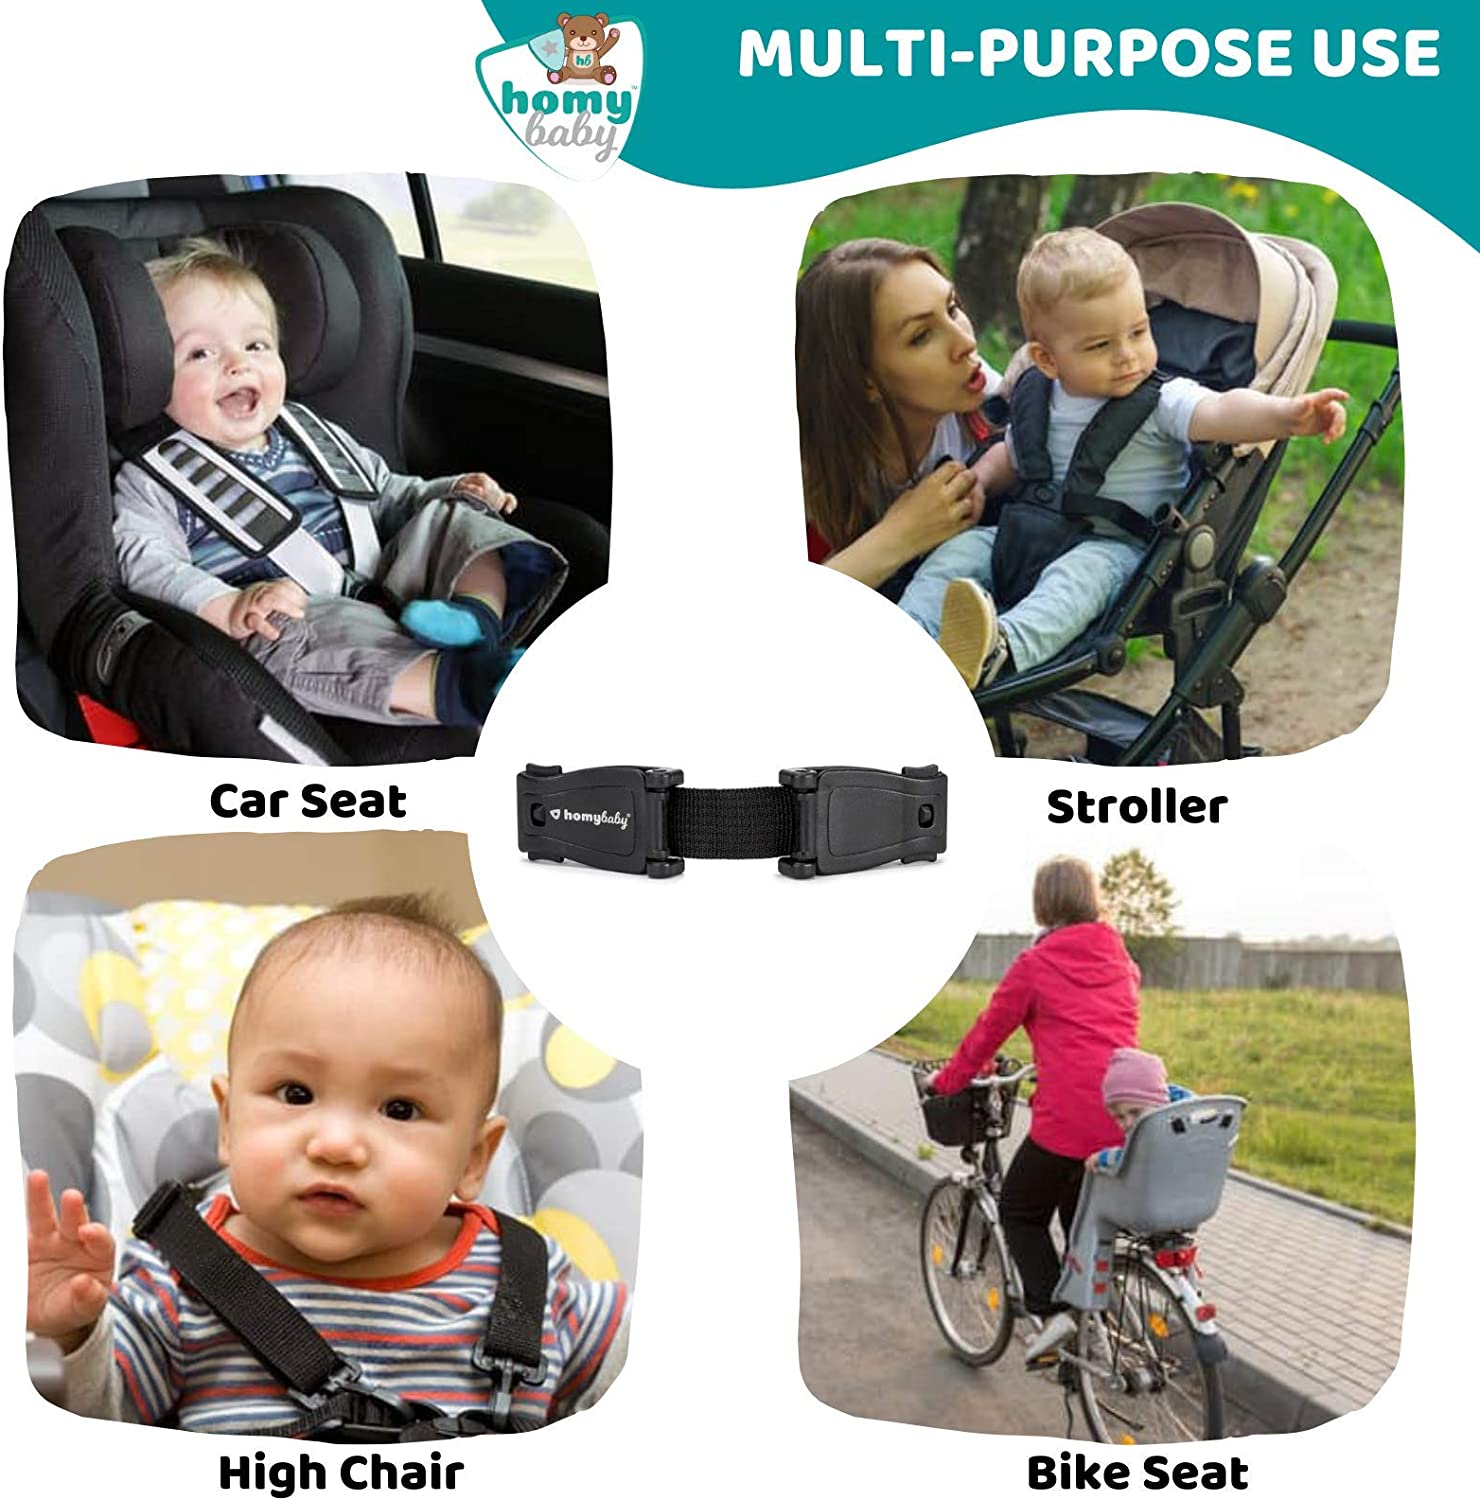 Prevent Children Taking Their Arms Out of The Straps HOMYBABY Car Seat Safety Clip Seat Belt Clip 2-pack Harness Chest Clip Anti Escape Car Seat Strap